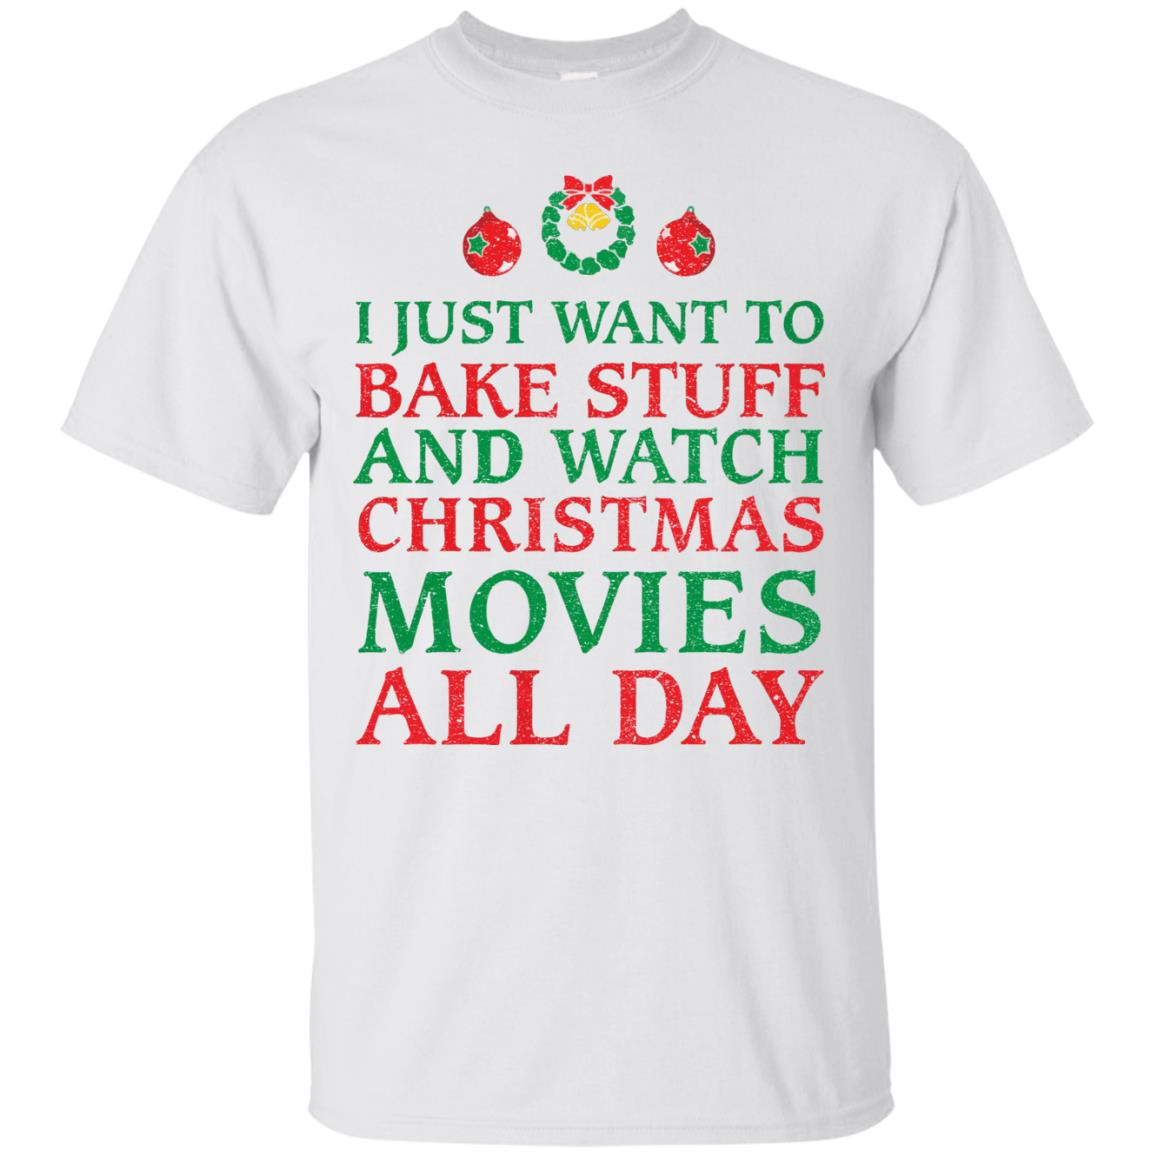 image 2695 - I Just Want to Bake Stuff and Watch Christmas Movie All Day Sweater, Ugly Sweatshirts